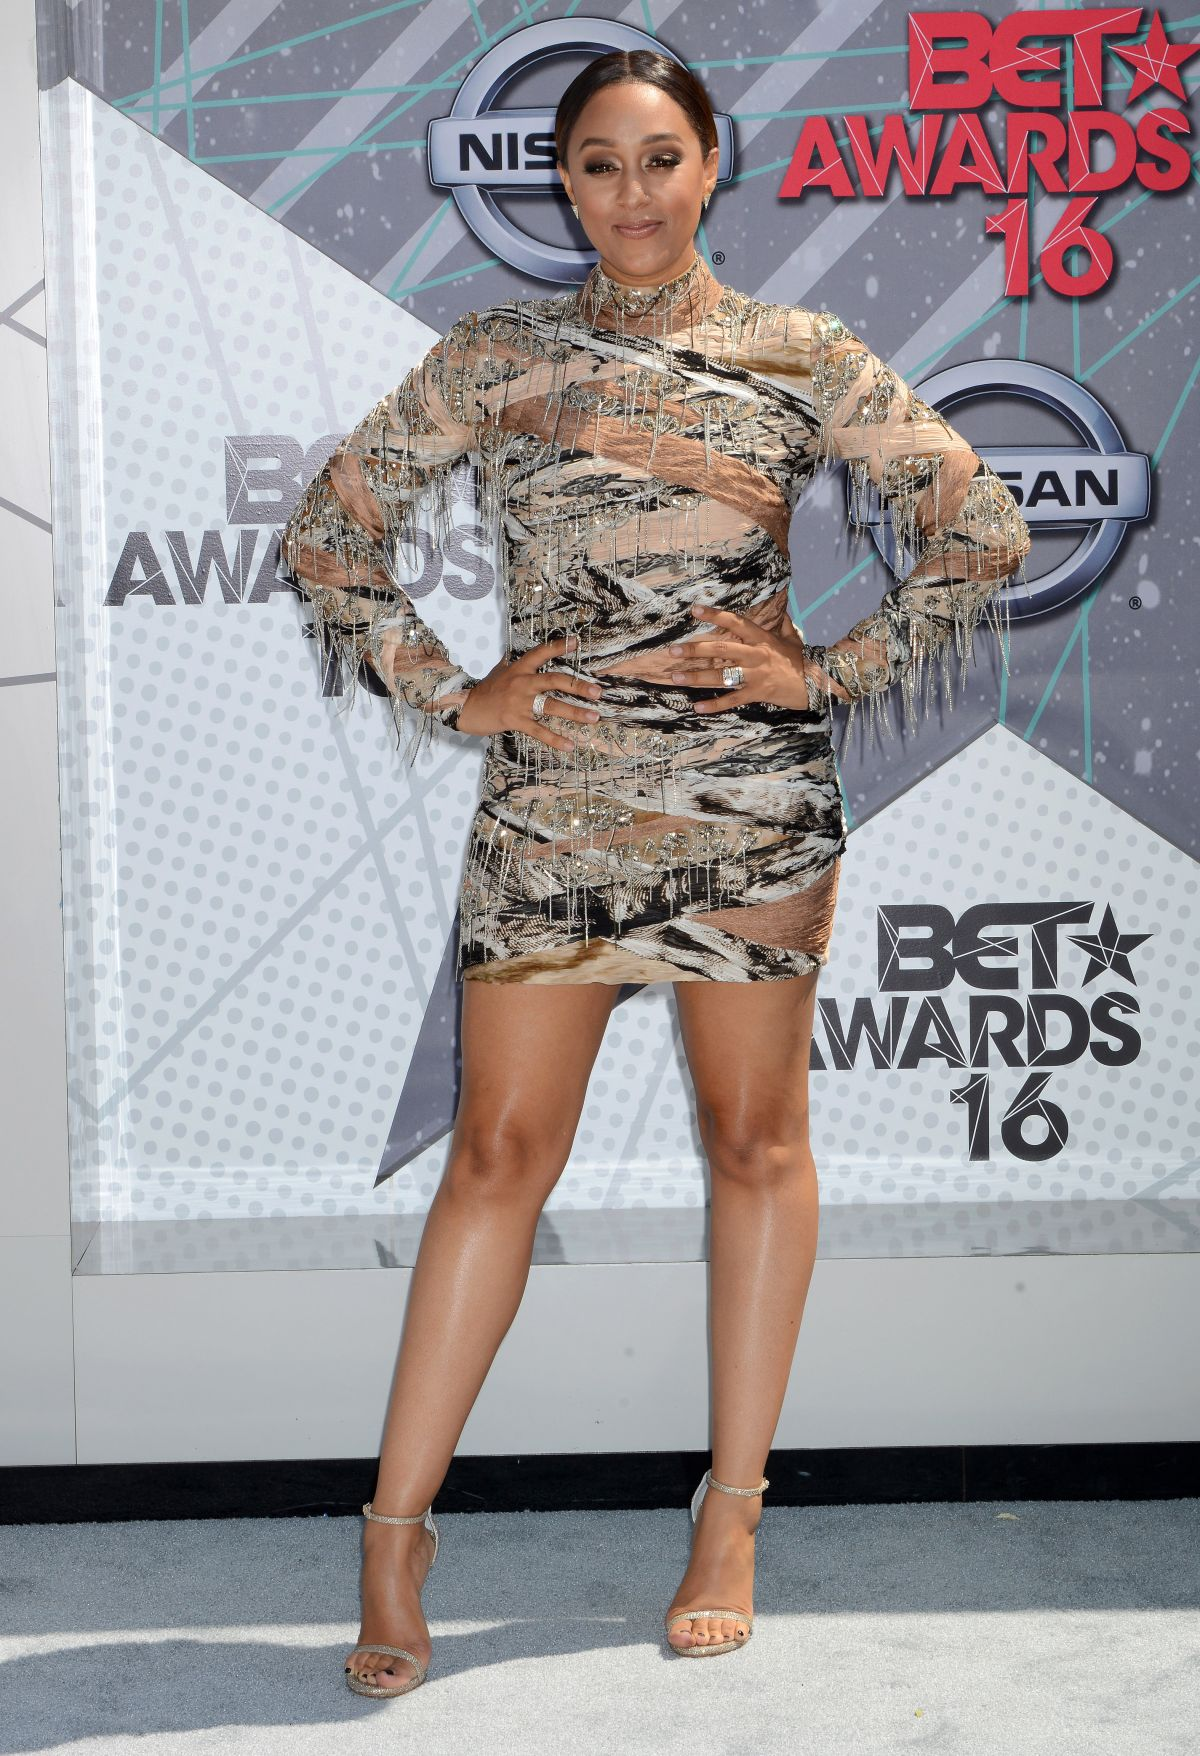 TIA MOWRY at 2016 BET Awards in Los Angeles 06/26/2016